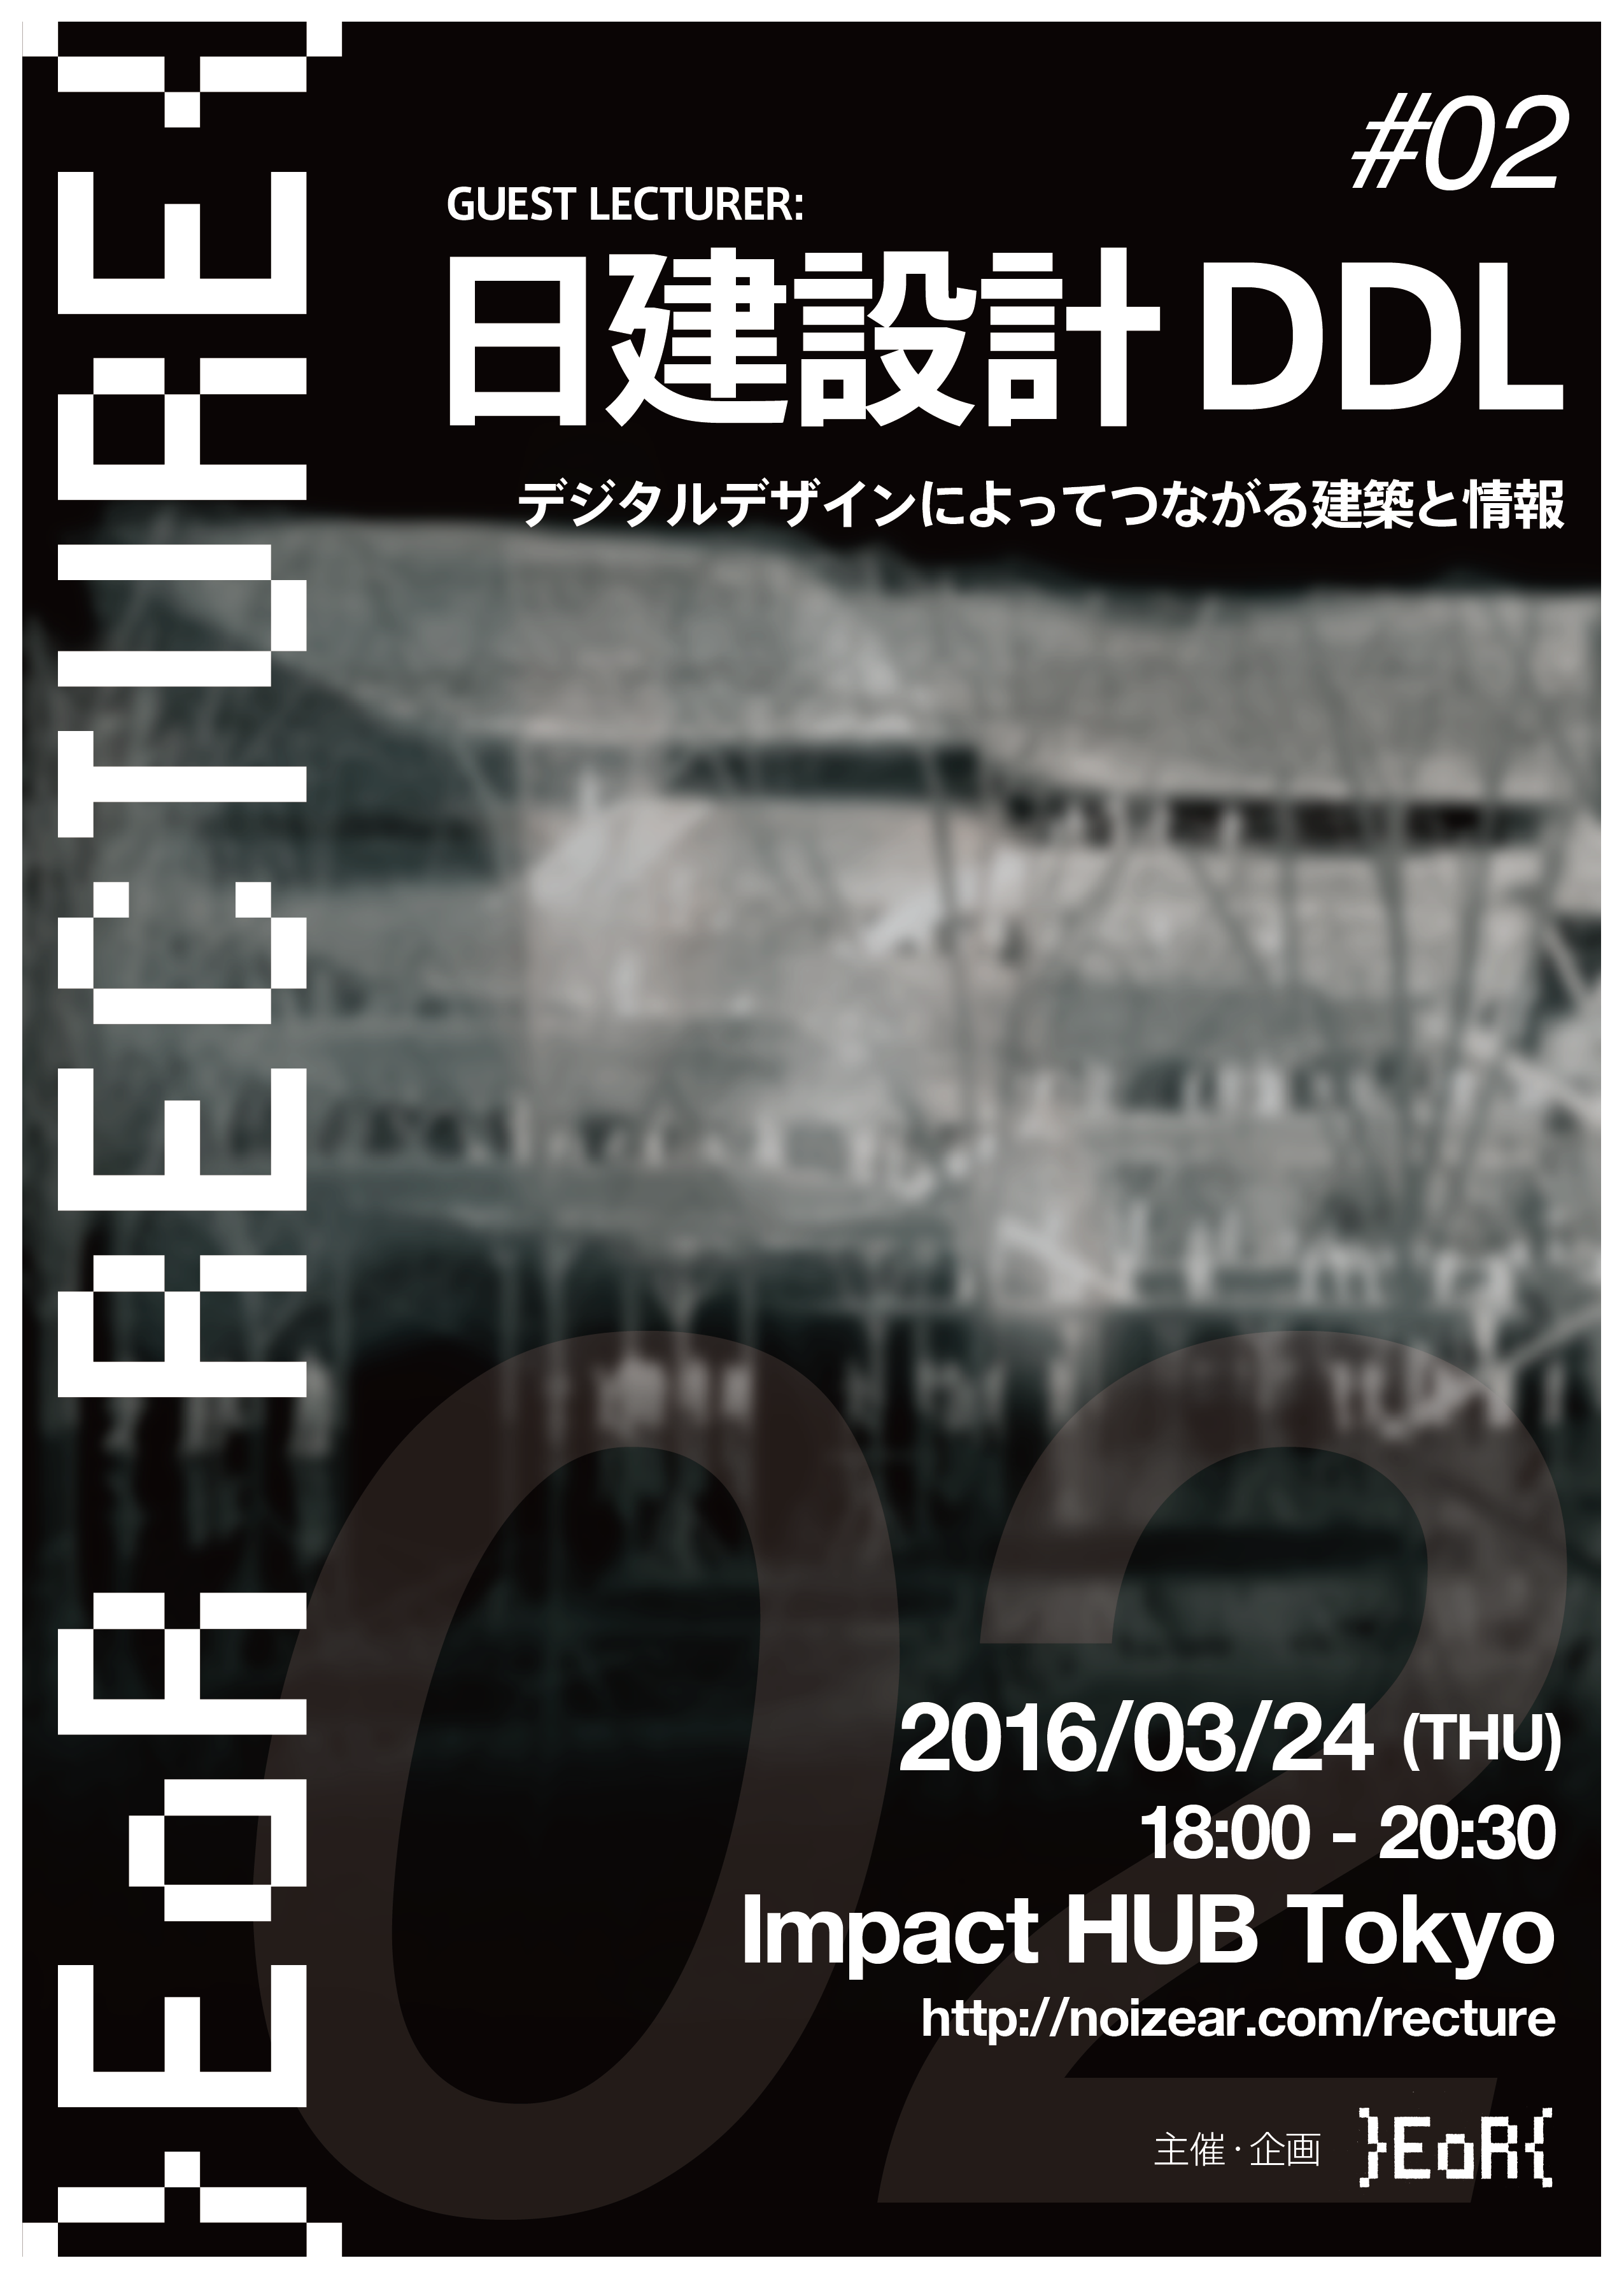 RECTURE-02-DDL-01